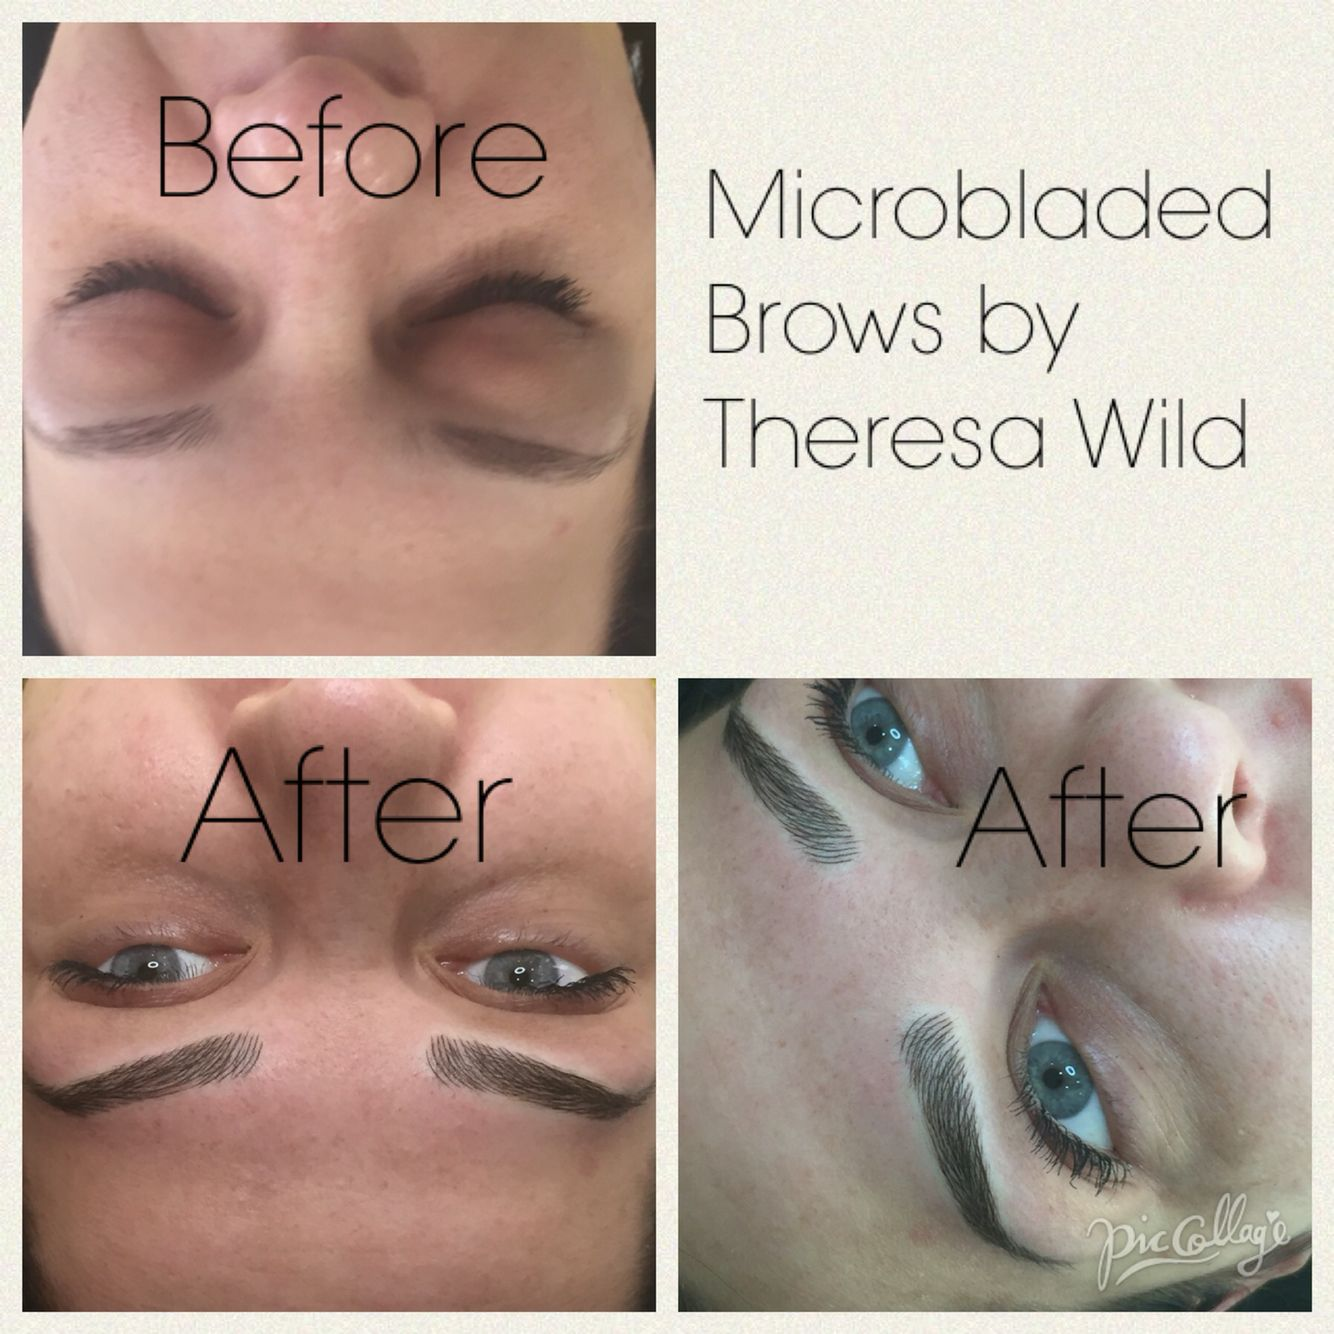 Microbladed brows by me!! Taking bookings for February now